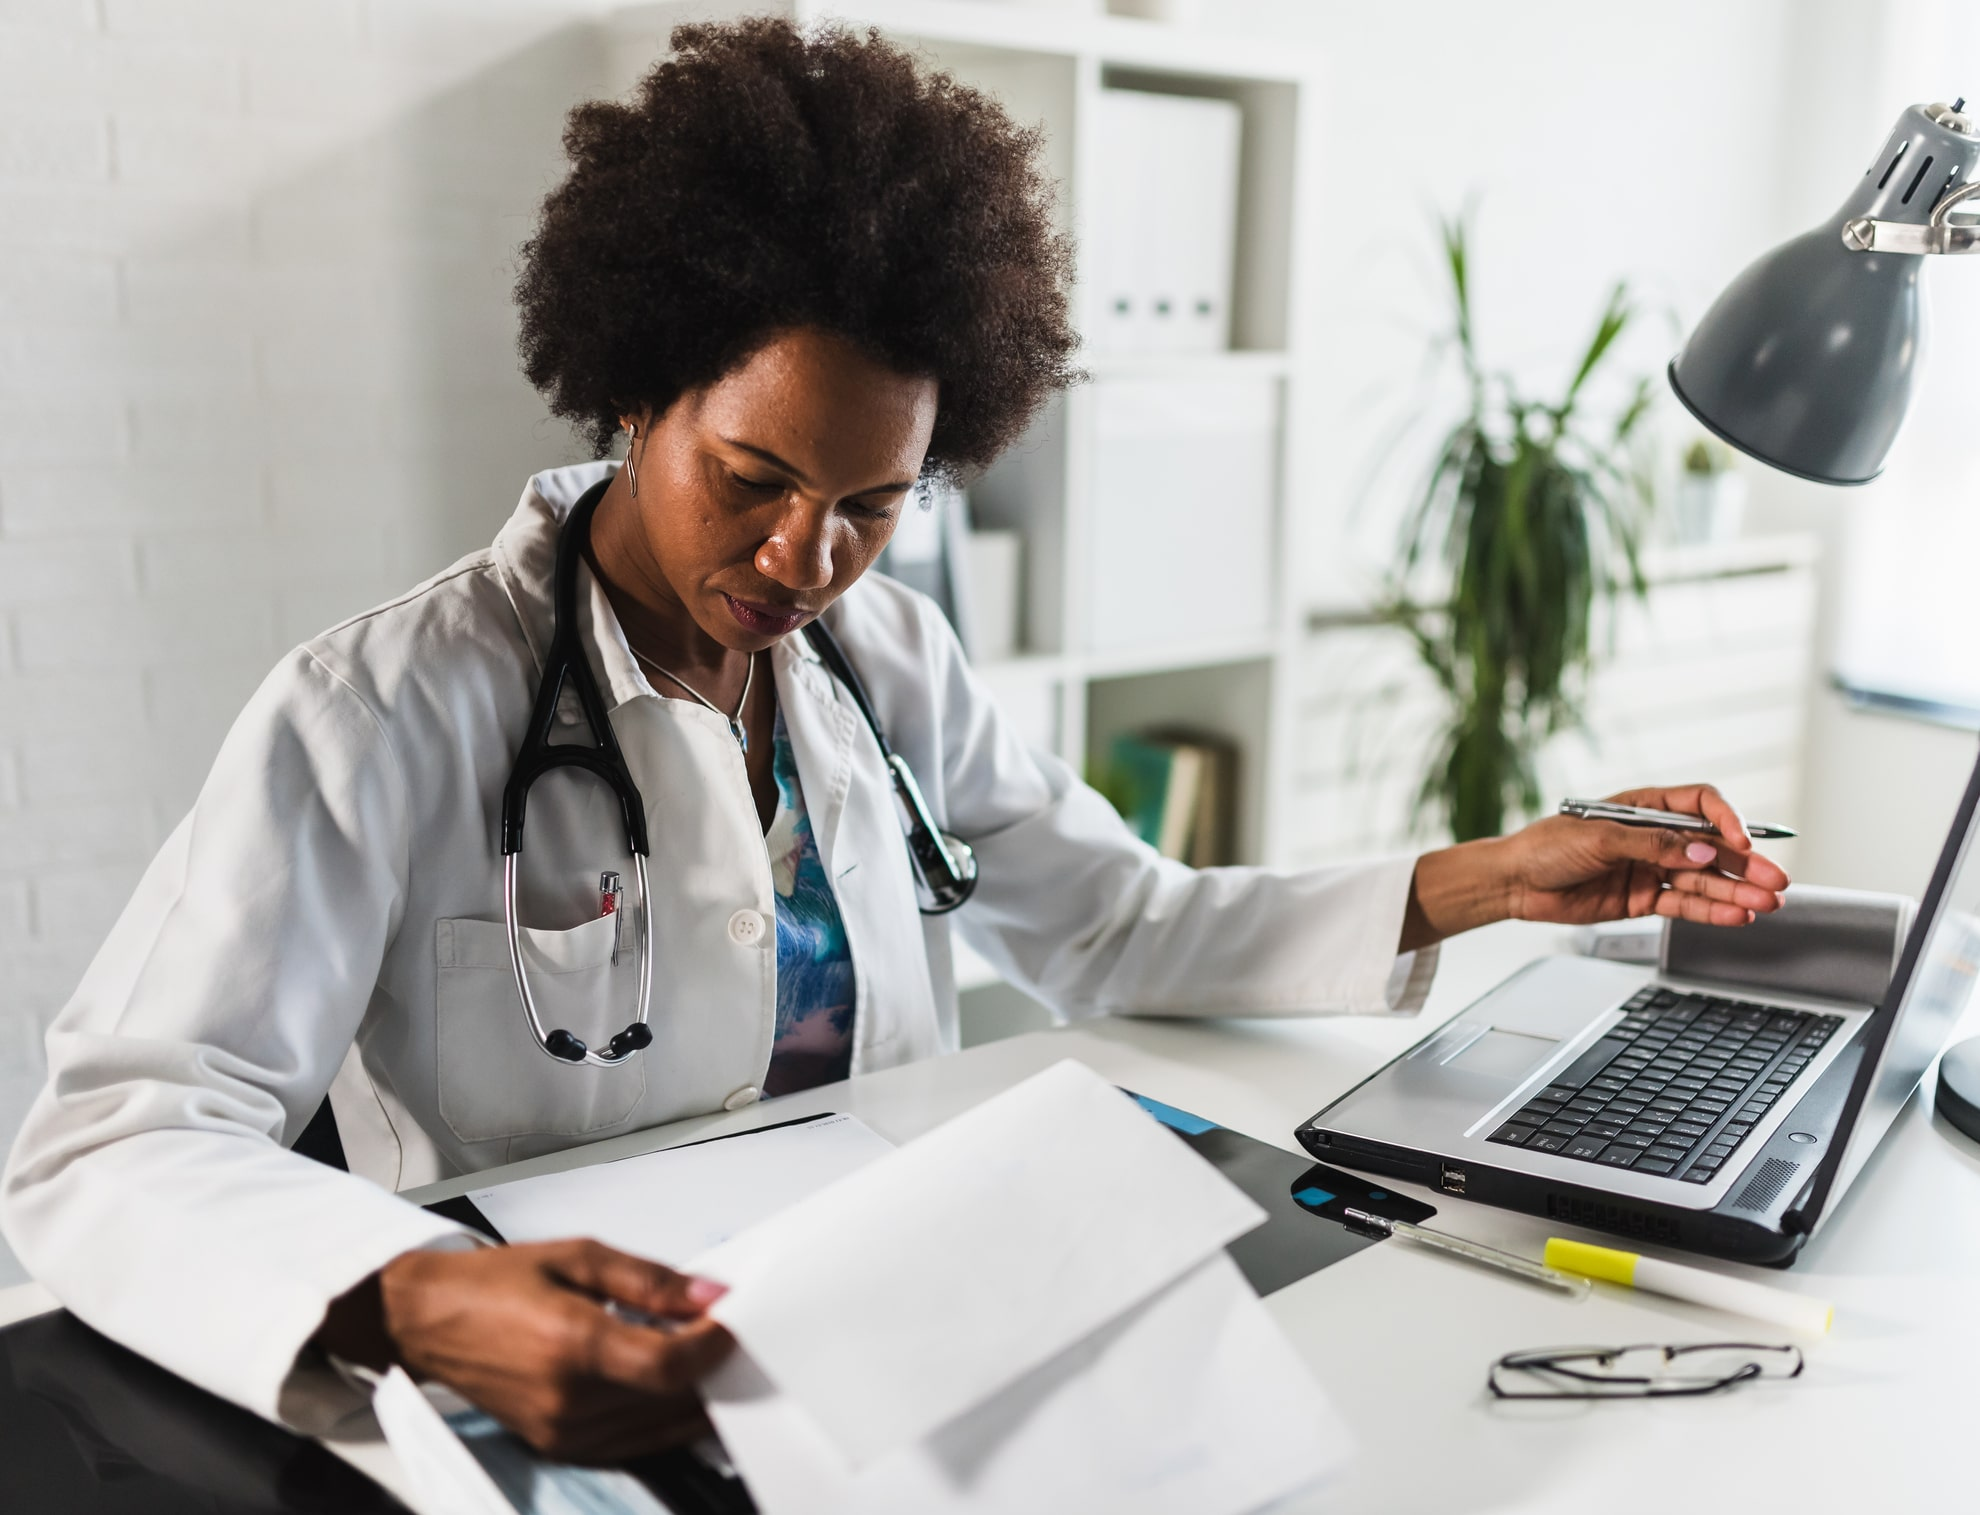 How to Prevent Physician Burnout at Your Practice